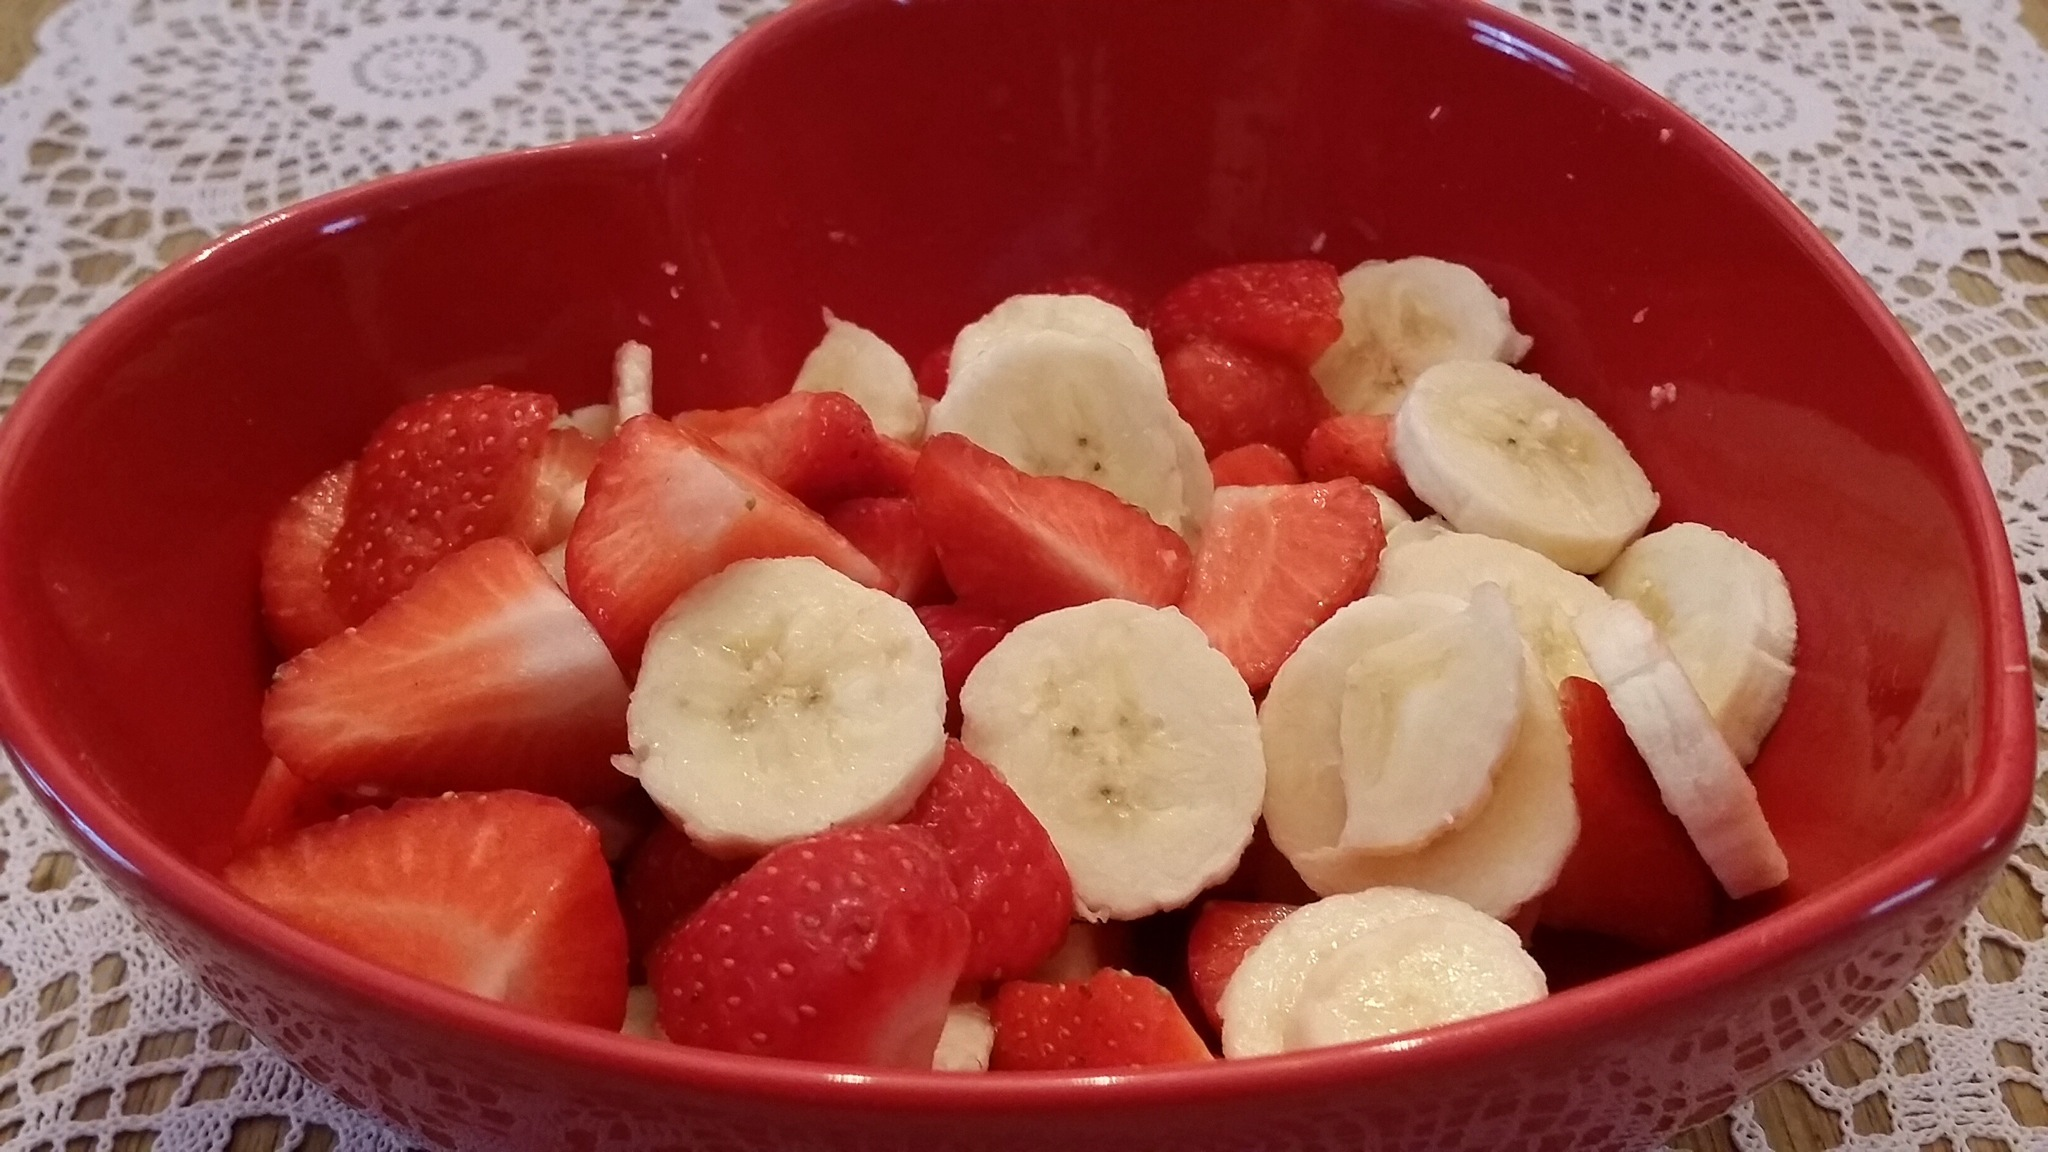 Tanya's 101 ~ Daily Fruit Intake 1 - Banana Boomerangs and Tanned Oranges   Four epiphanies that helped me eat fruit everyday